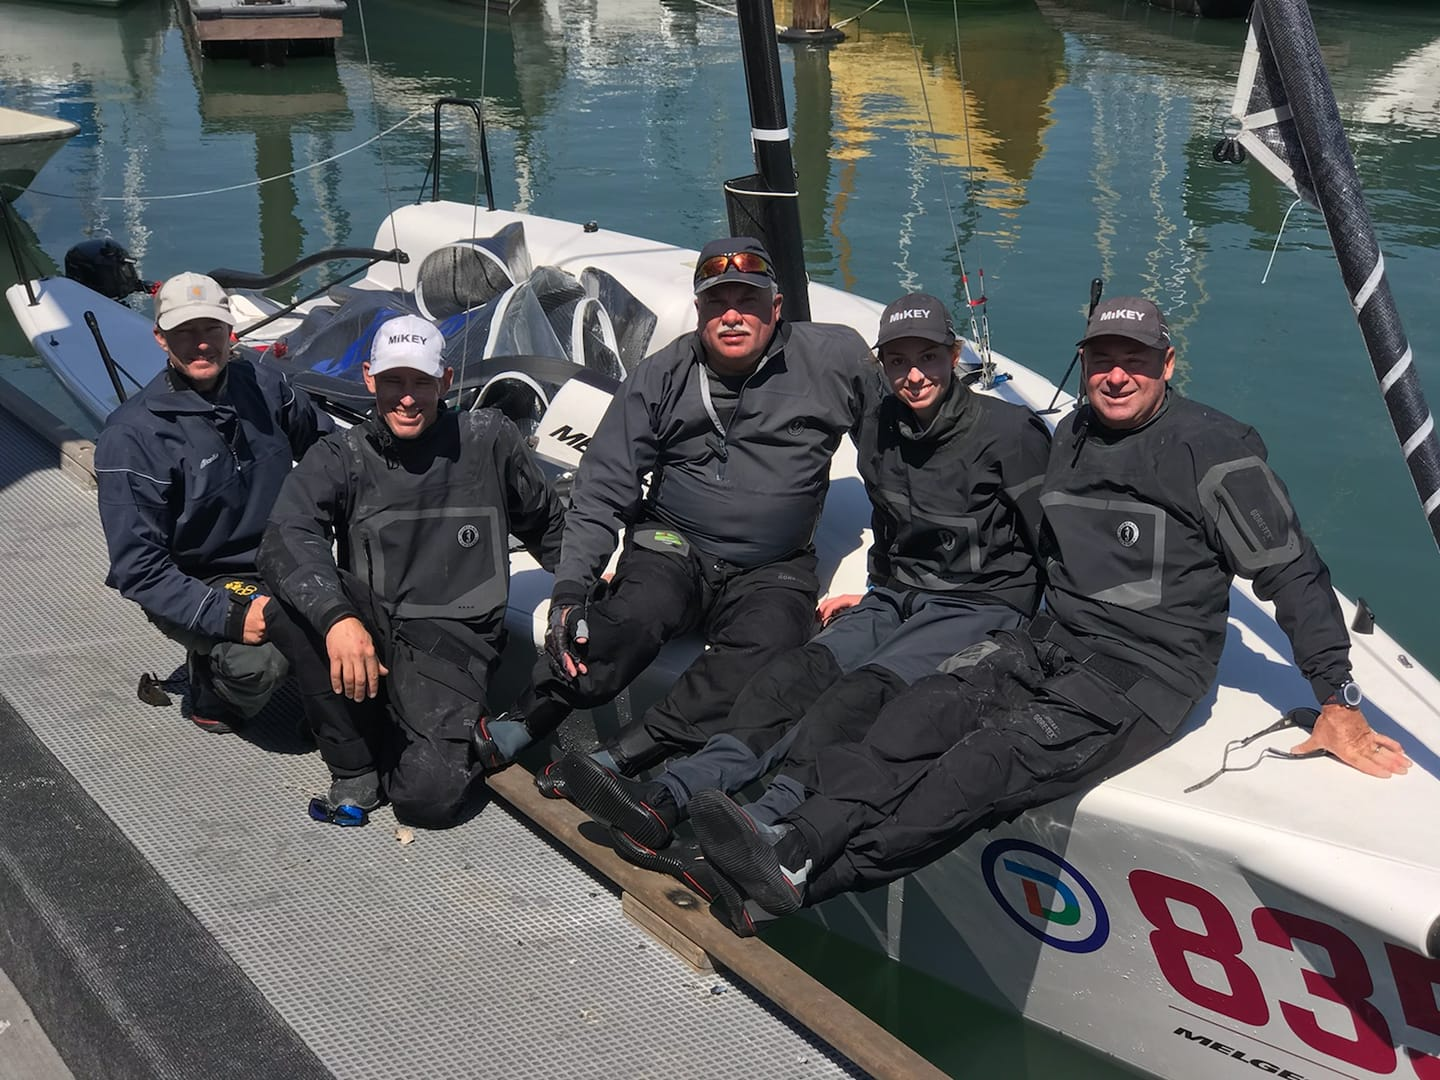 Kevin Welch's MIKEY team - Melges 24 US Champion 2018